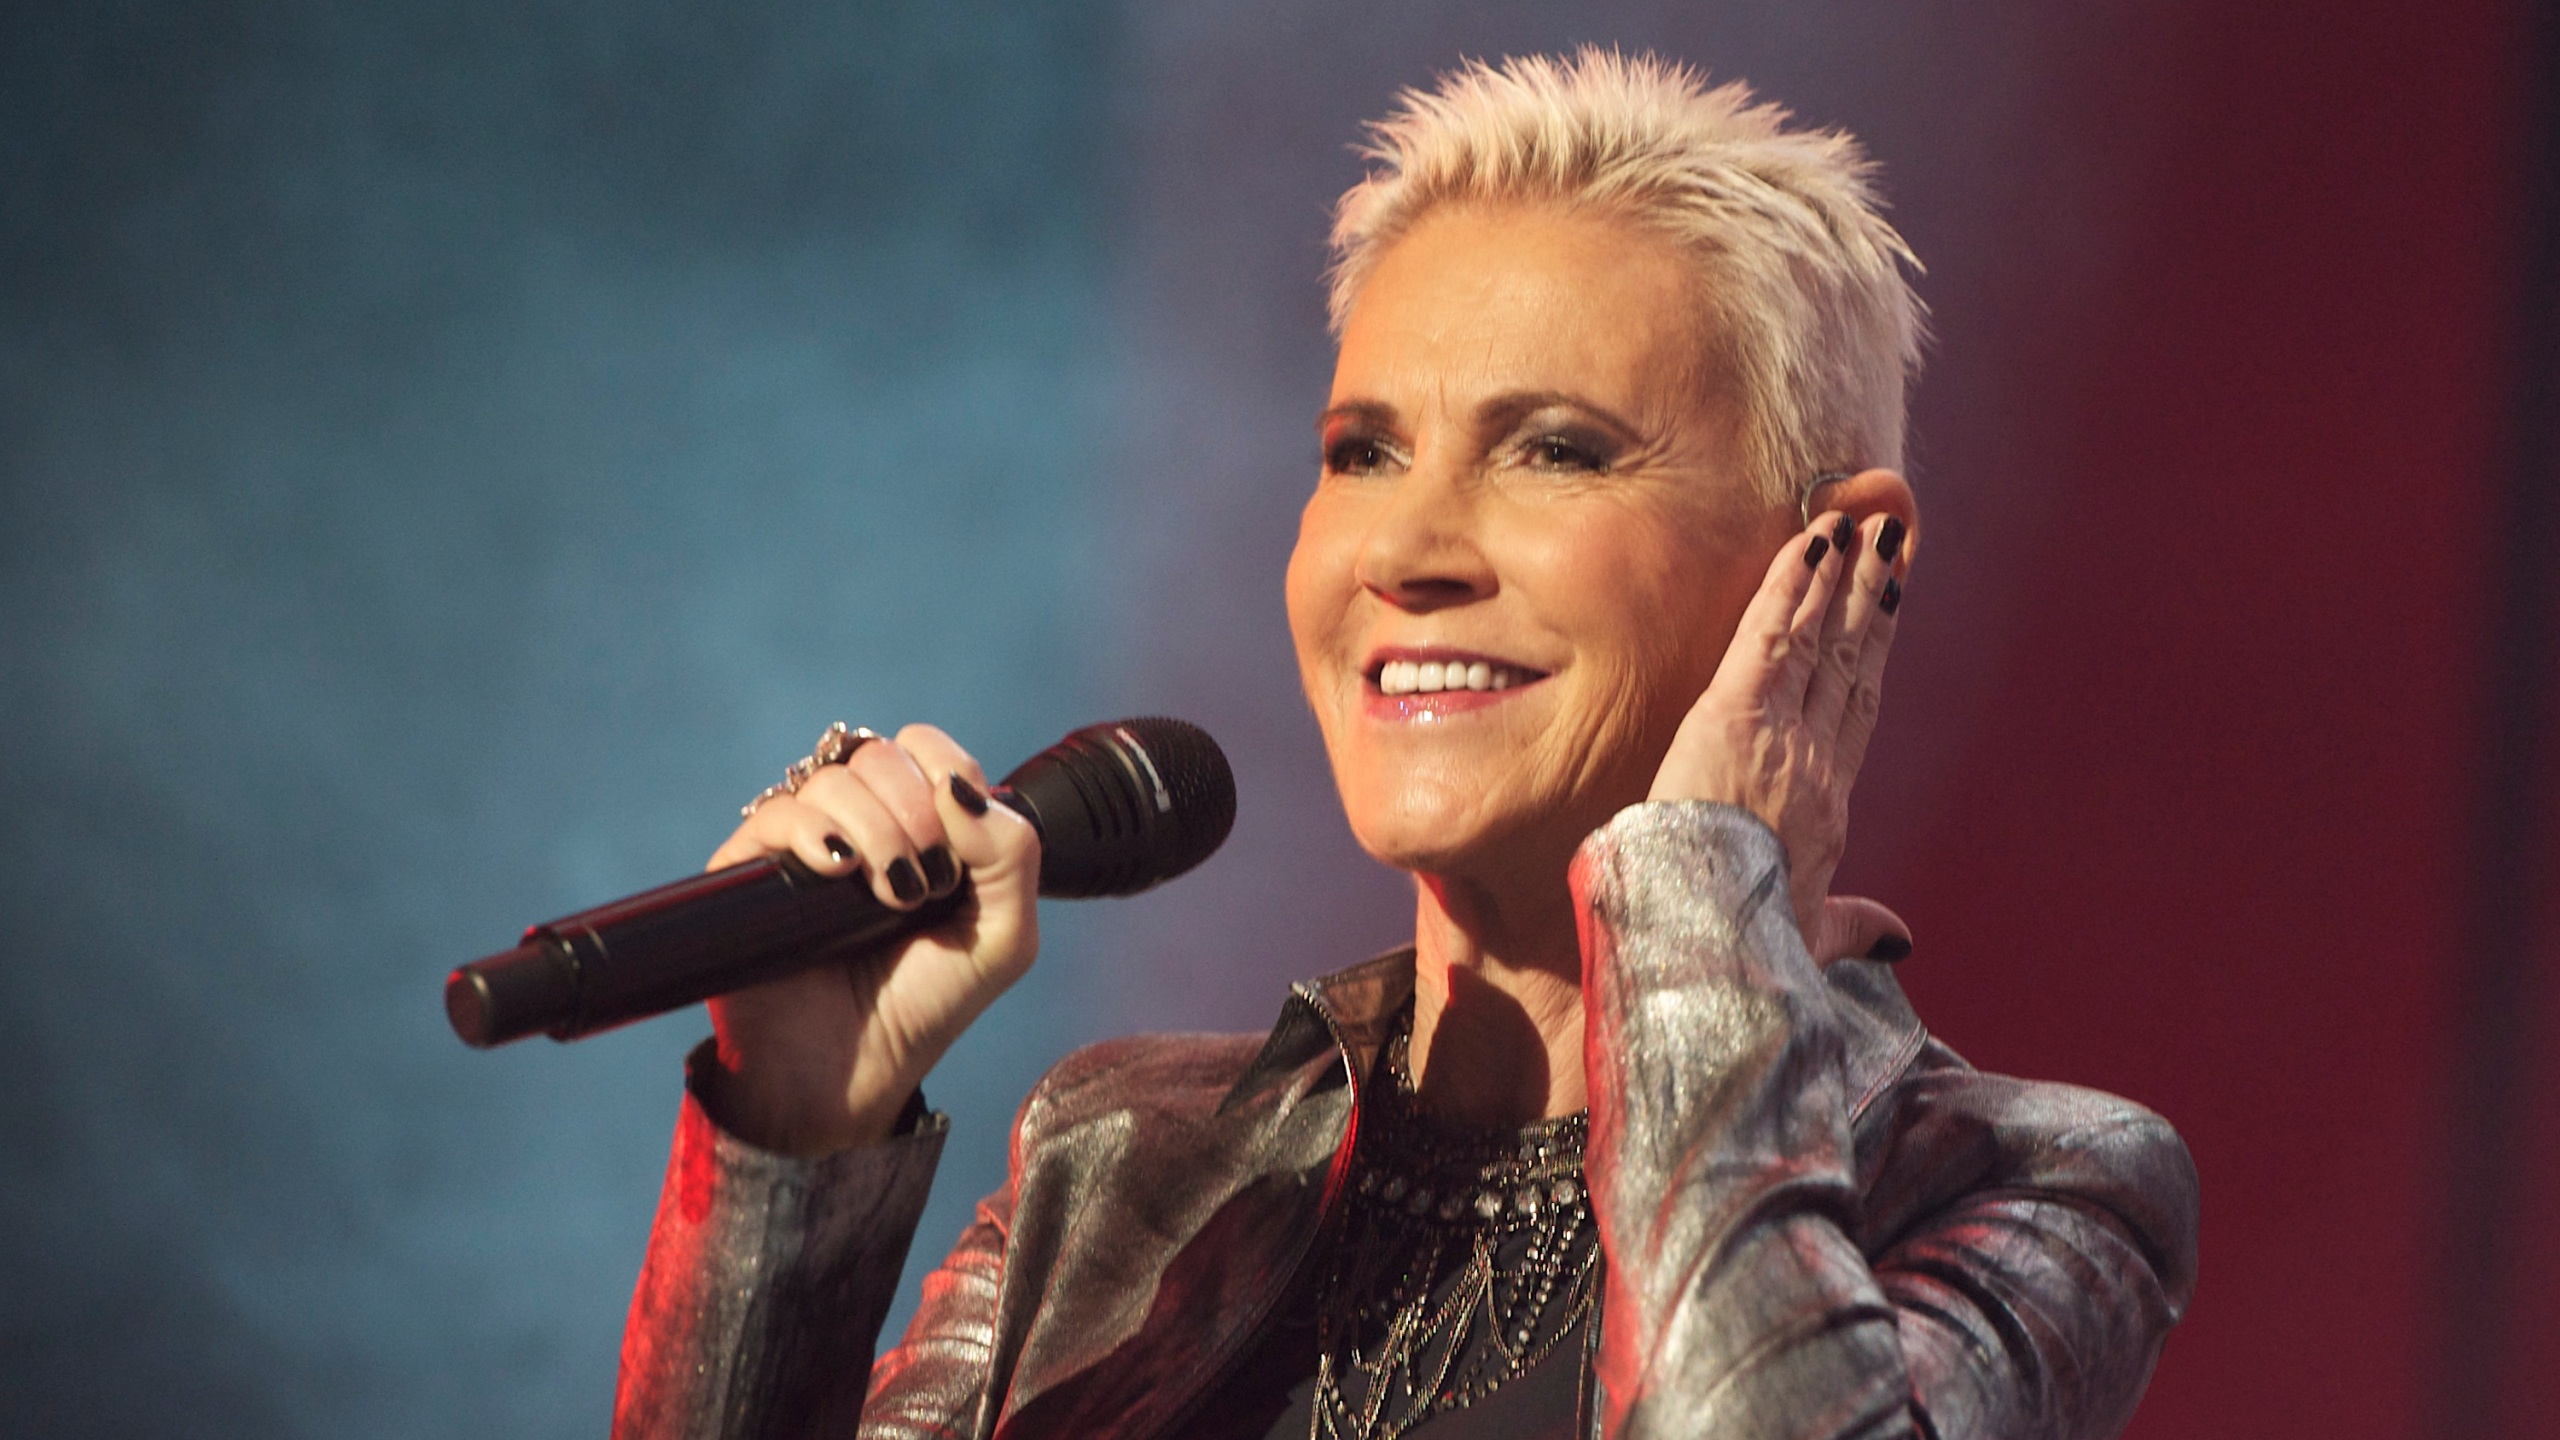 Marie Fredriksson of Roxette performs on stage at Palacio de Vistalegre on November 18, 2011 in Madrid, Spain. (Credit: Carlos Alvarez/Getty Images)